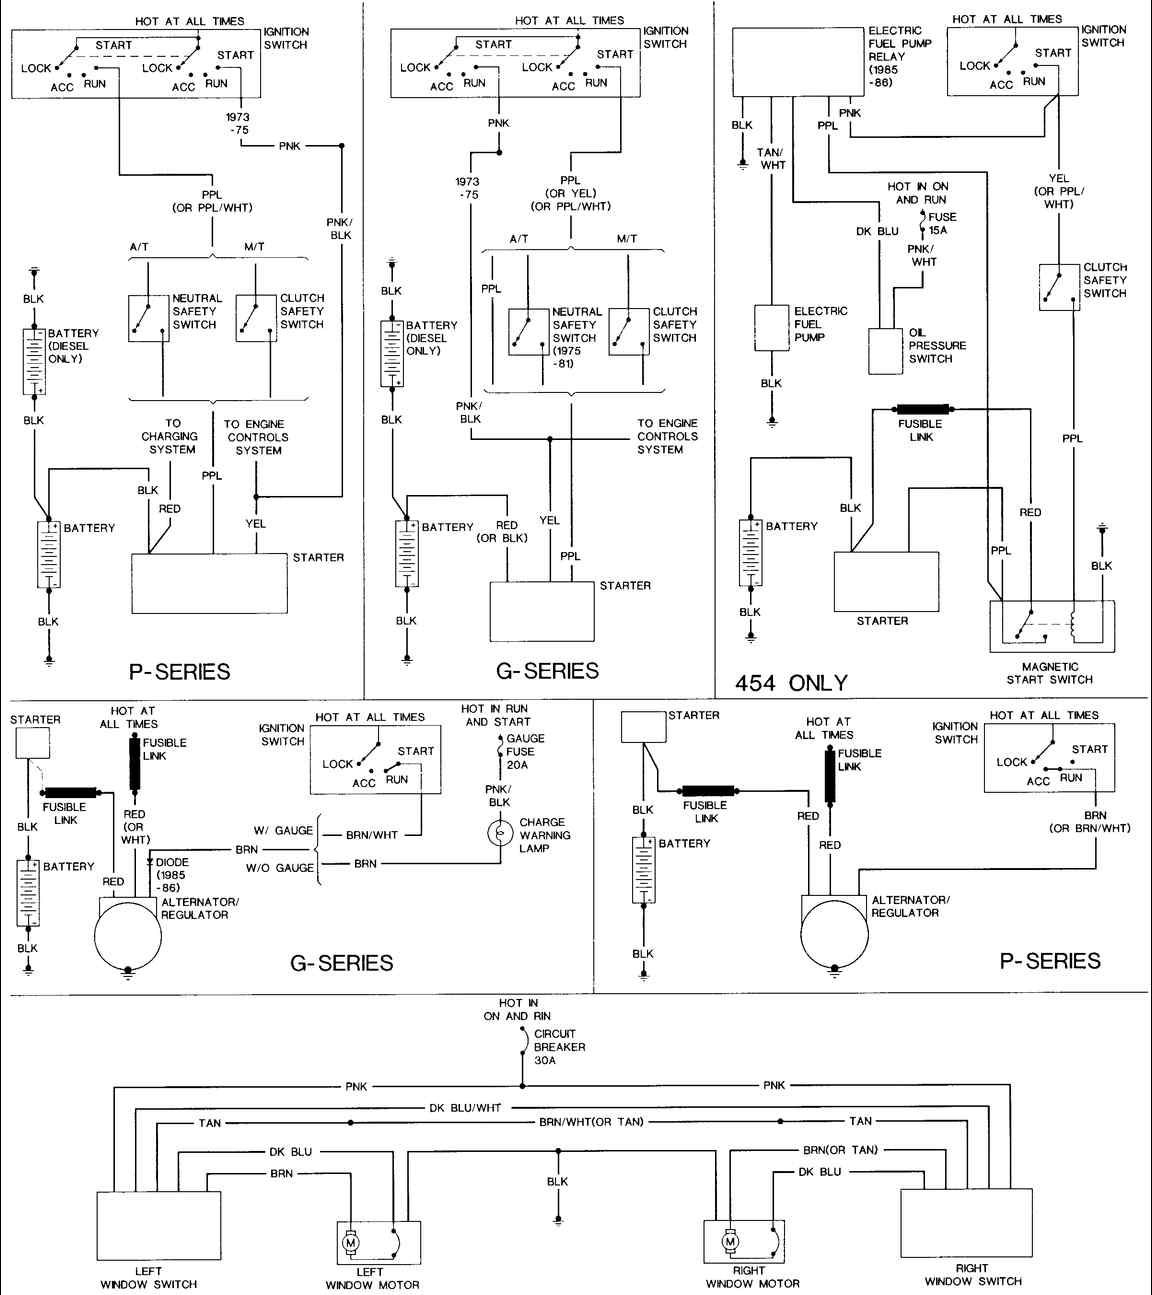 0c73623a181dc376dbb4777e2029d285 85 chevy truck wiring diagram 85 chevy van the steering column chevy starter wiring diagram at readyjetset.co